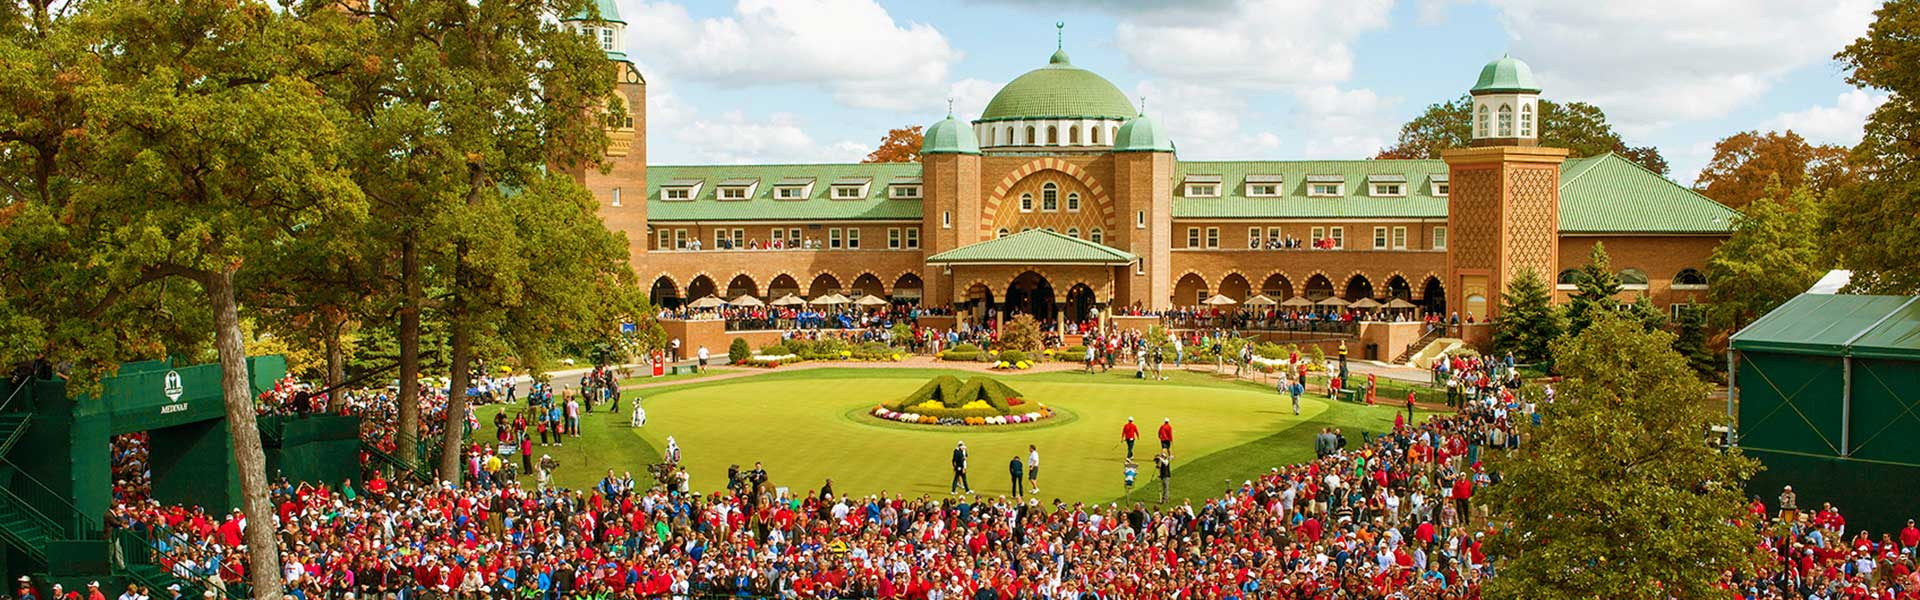 Medinah Country Club Homepage